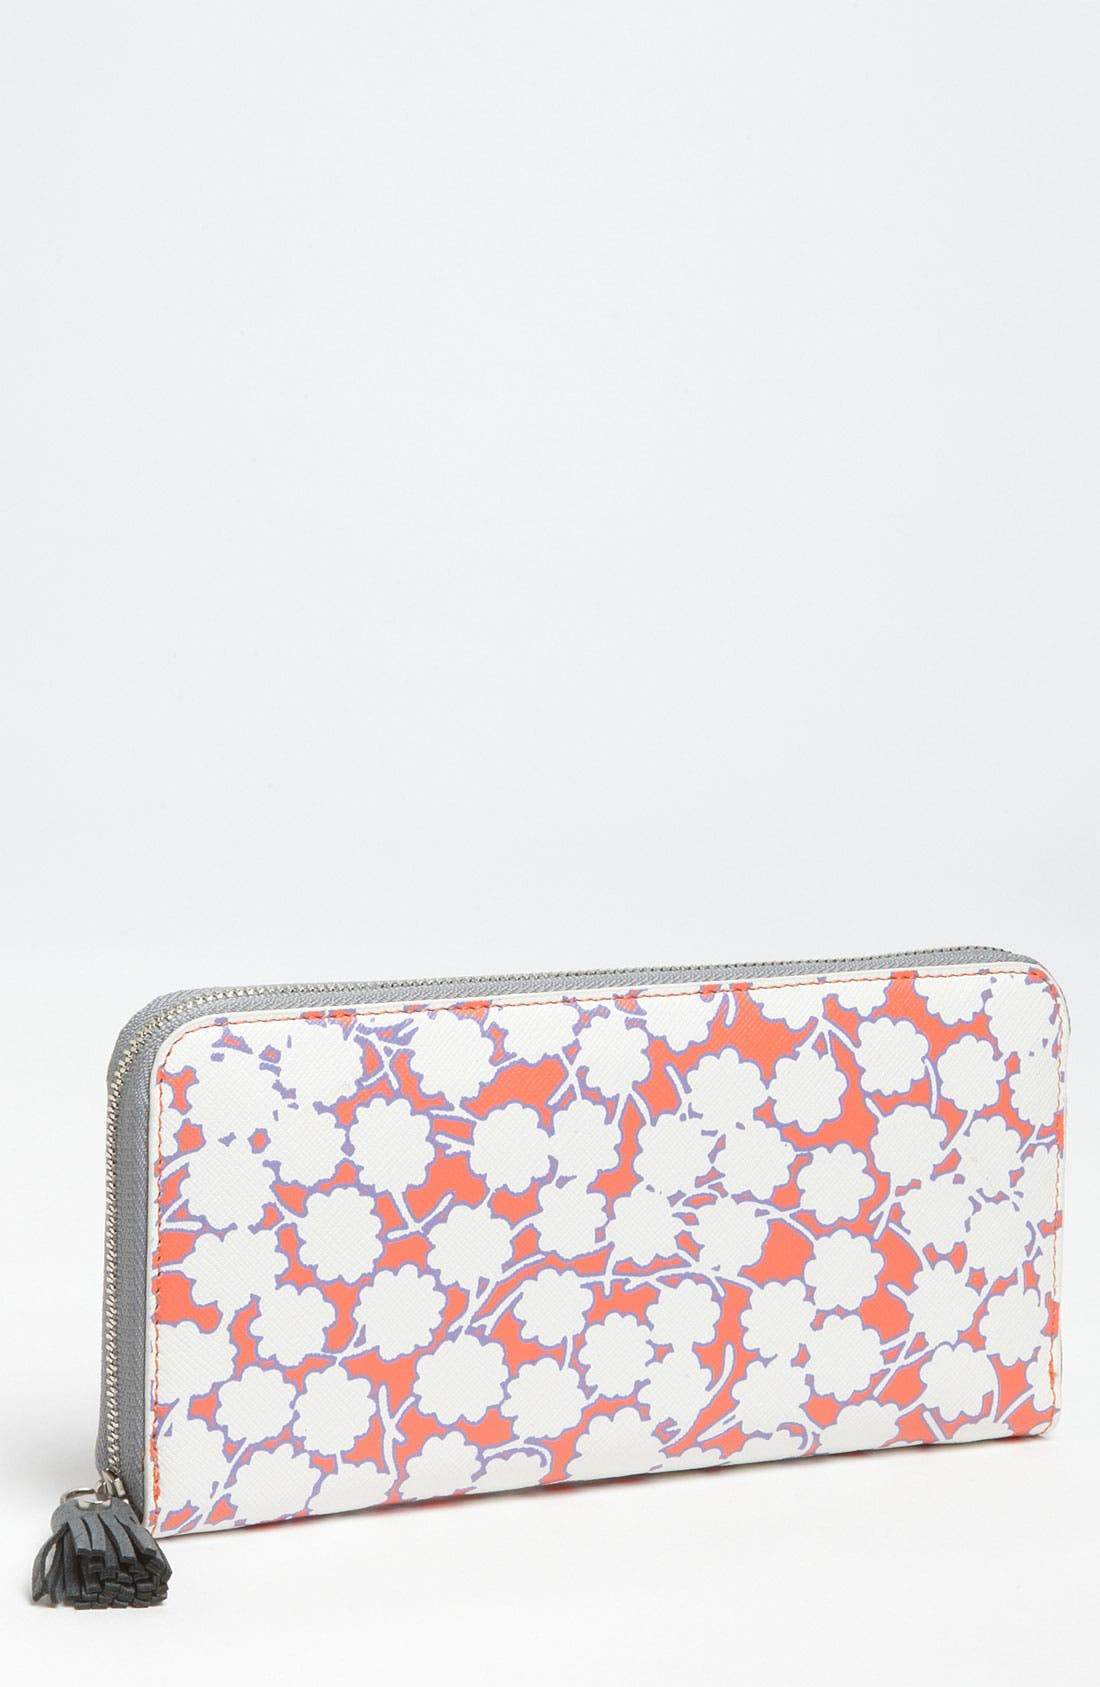 Main Image - Diane von Furstenberg 'Vintage' Zip Around Wallet